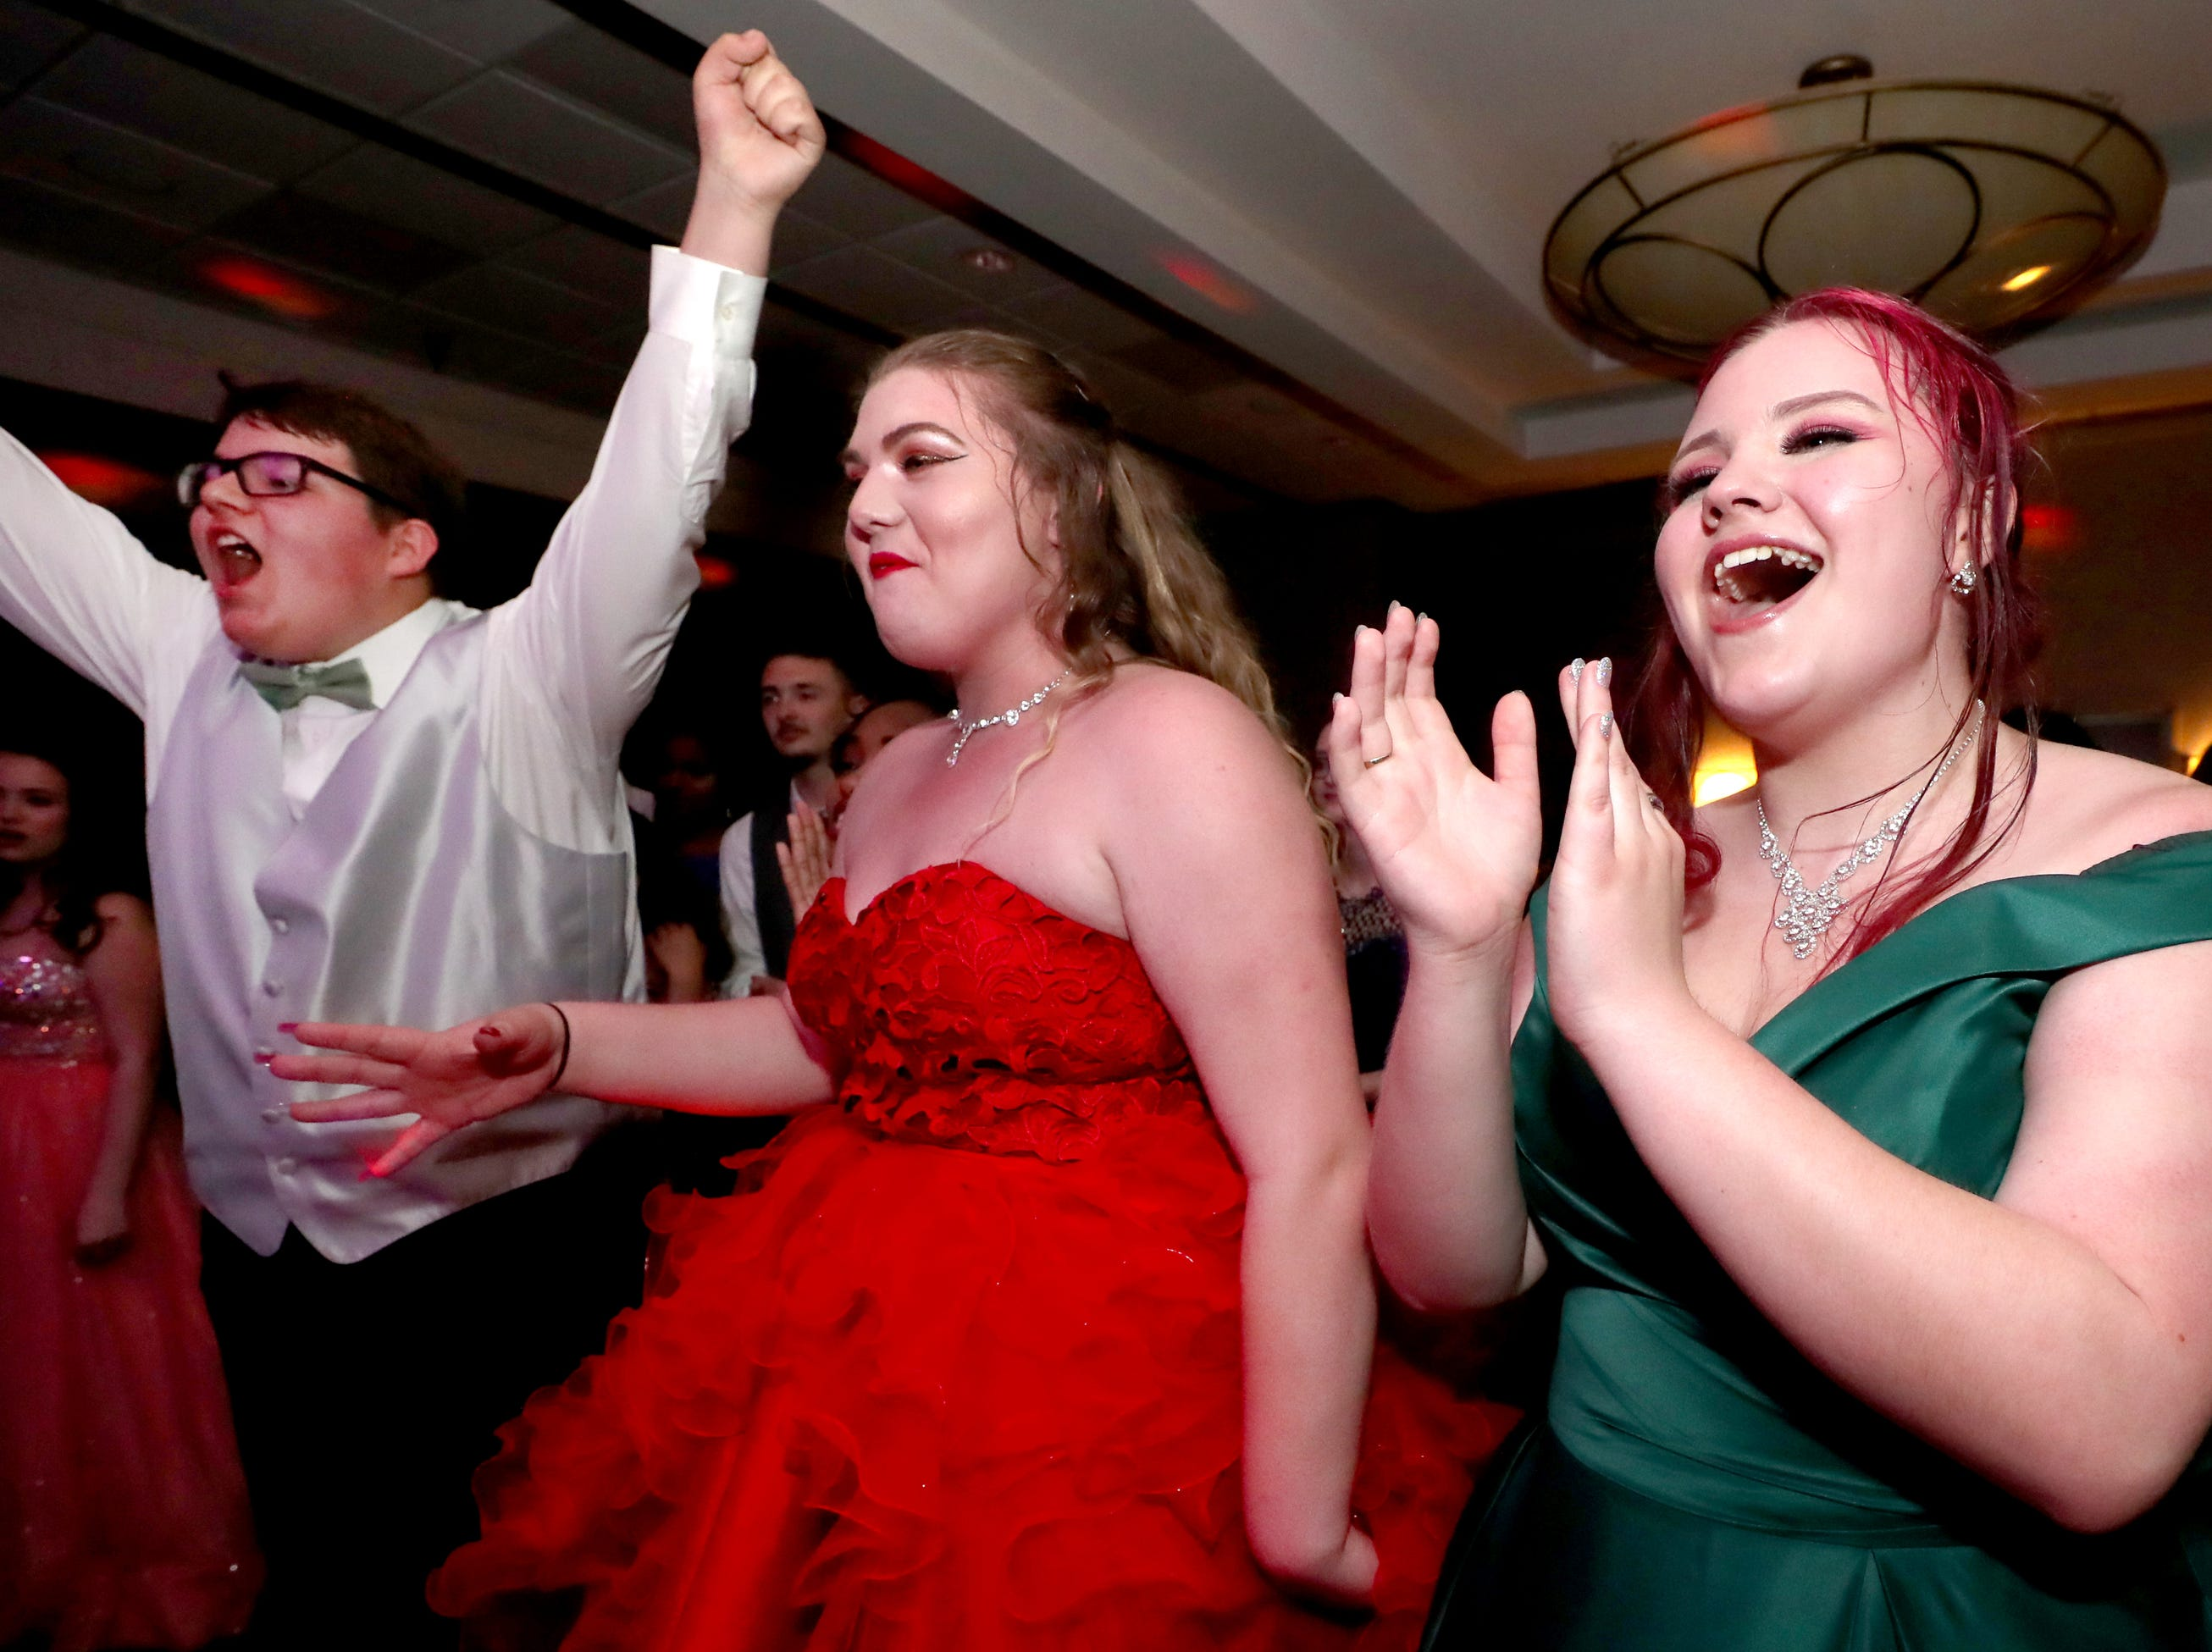 Nate Steinhurst, left, Cortney Springer center, and Evie Douglas, right react as Diego Valencia is announced as Holloway High's Prom King at Holloway's prom at the DoubleTree on Thursday April 18, 2019.